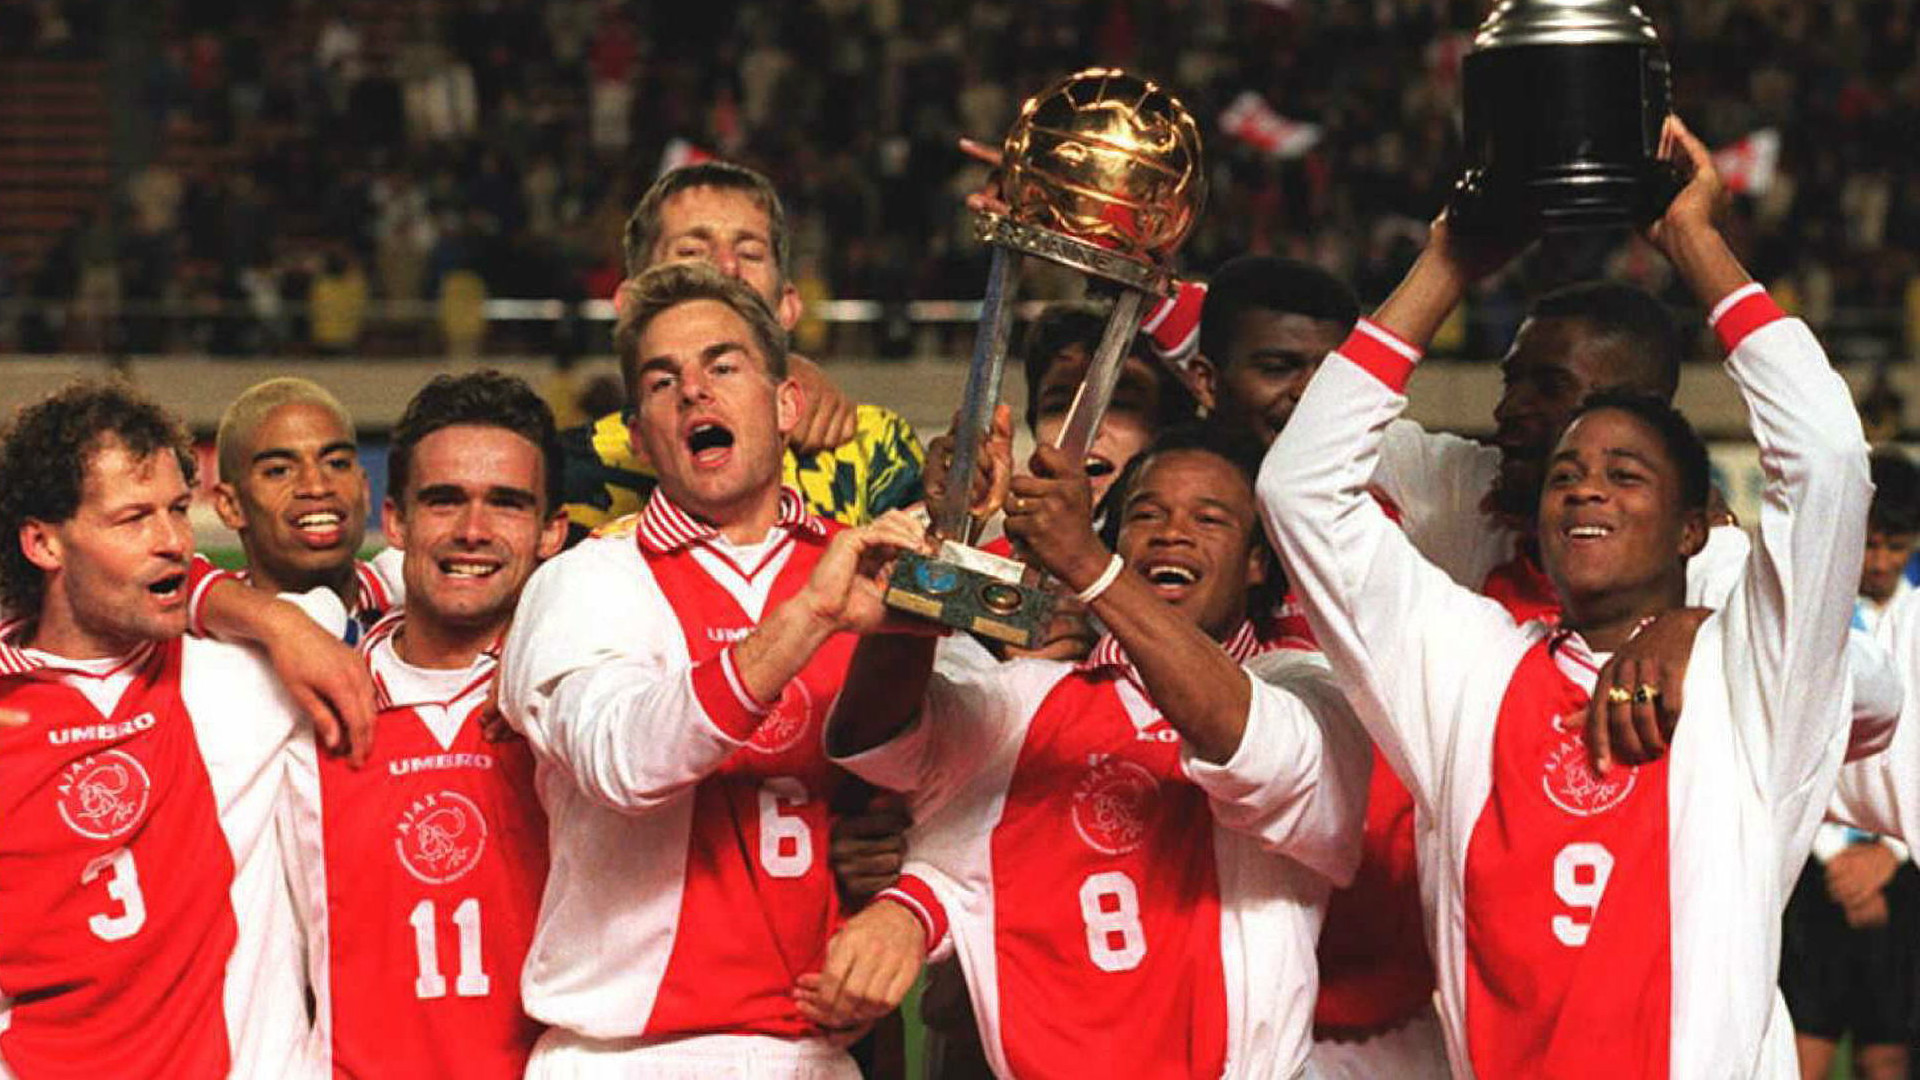 The Ajax team of the mid-90s